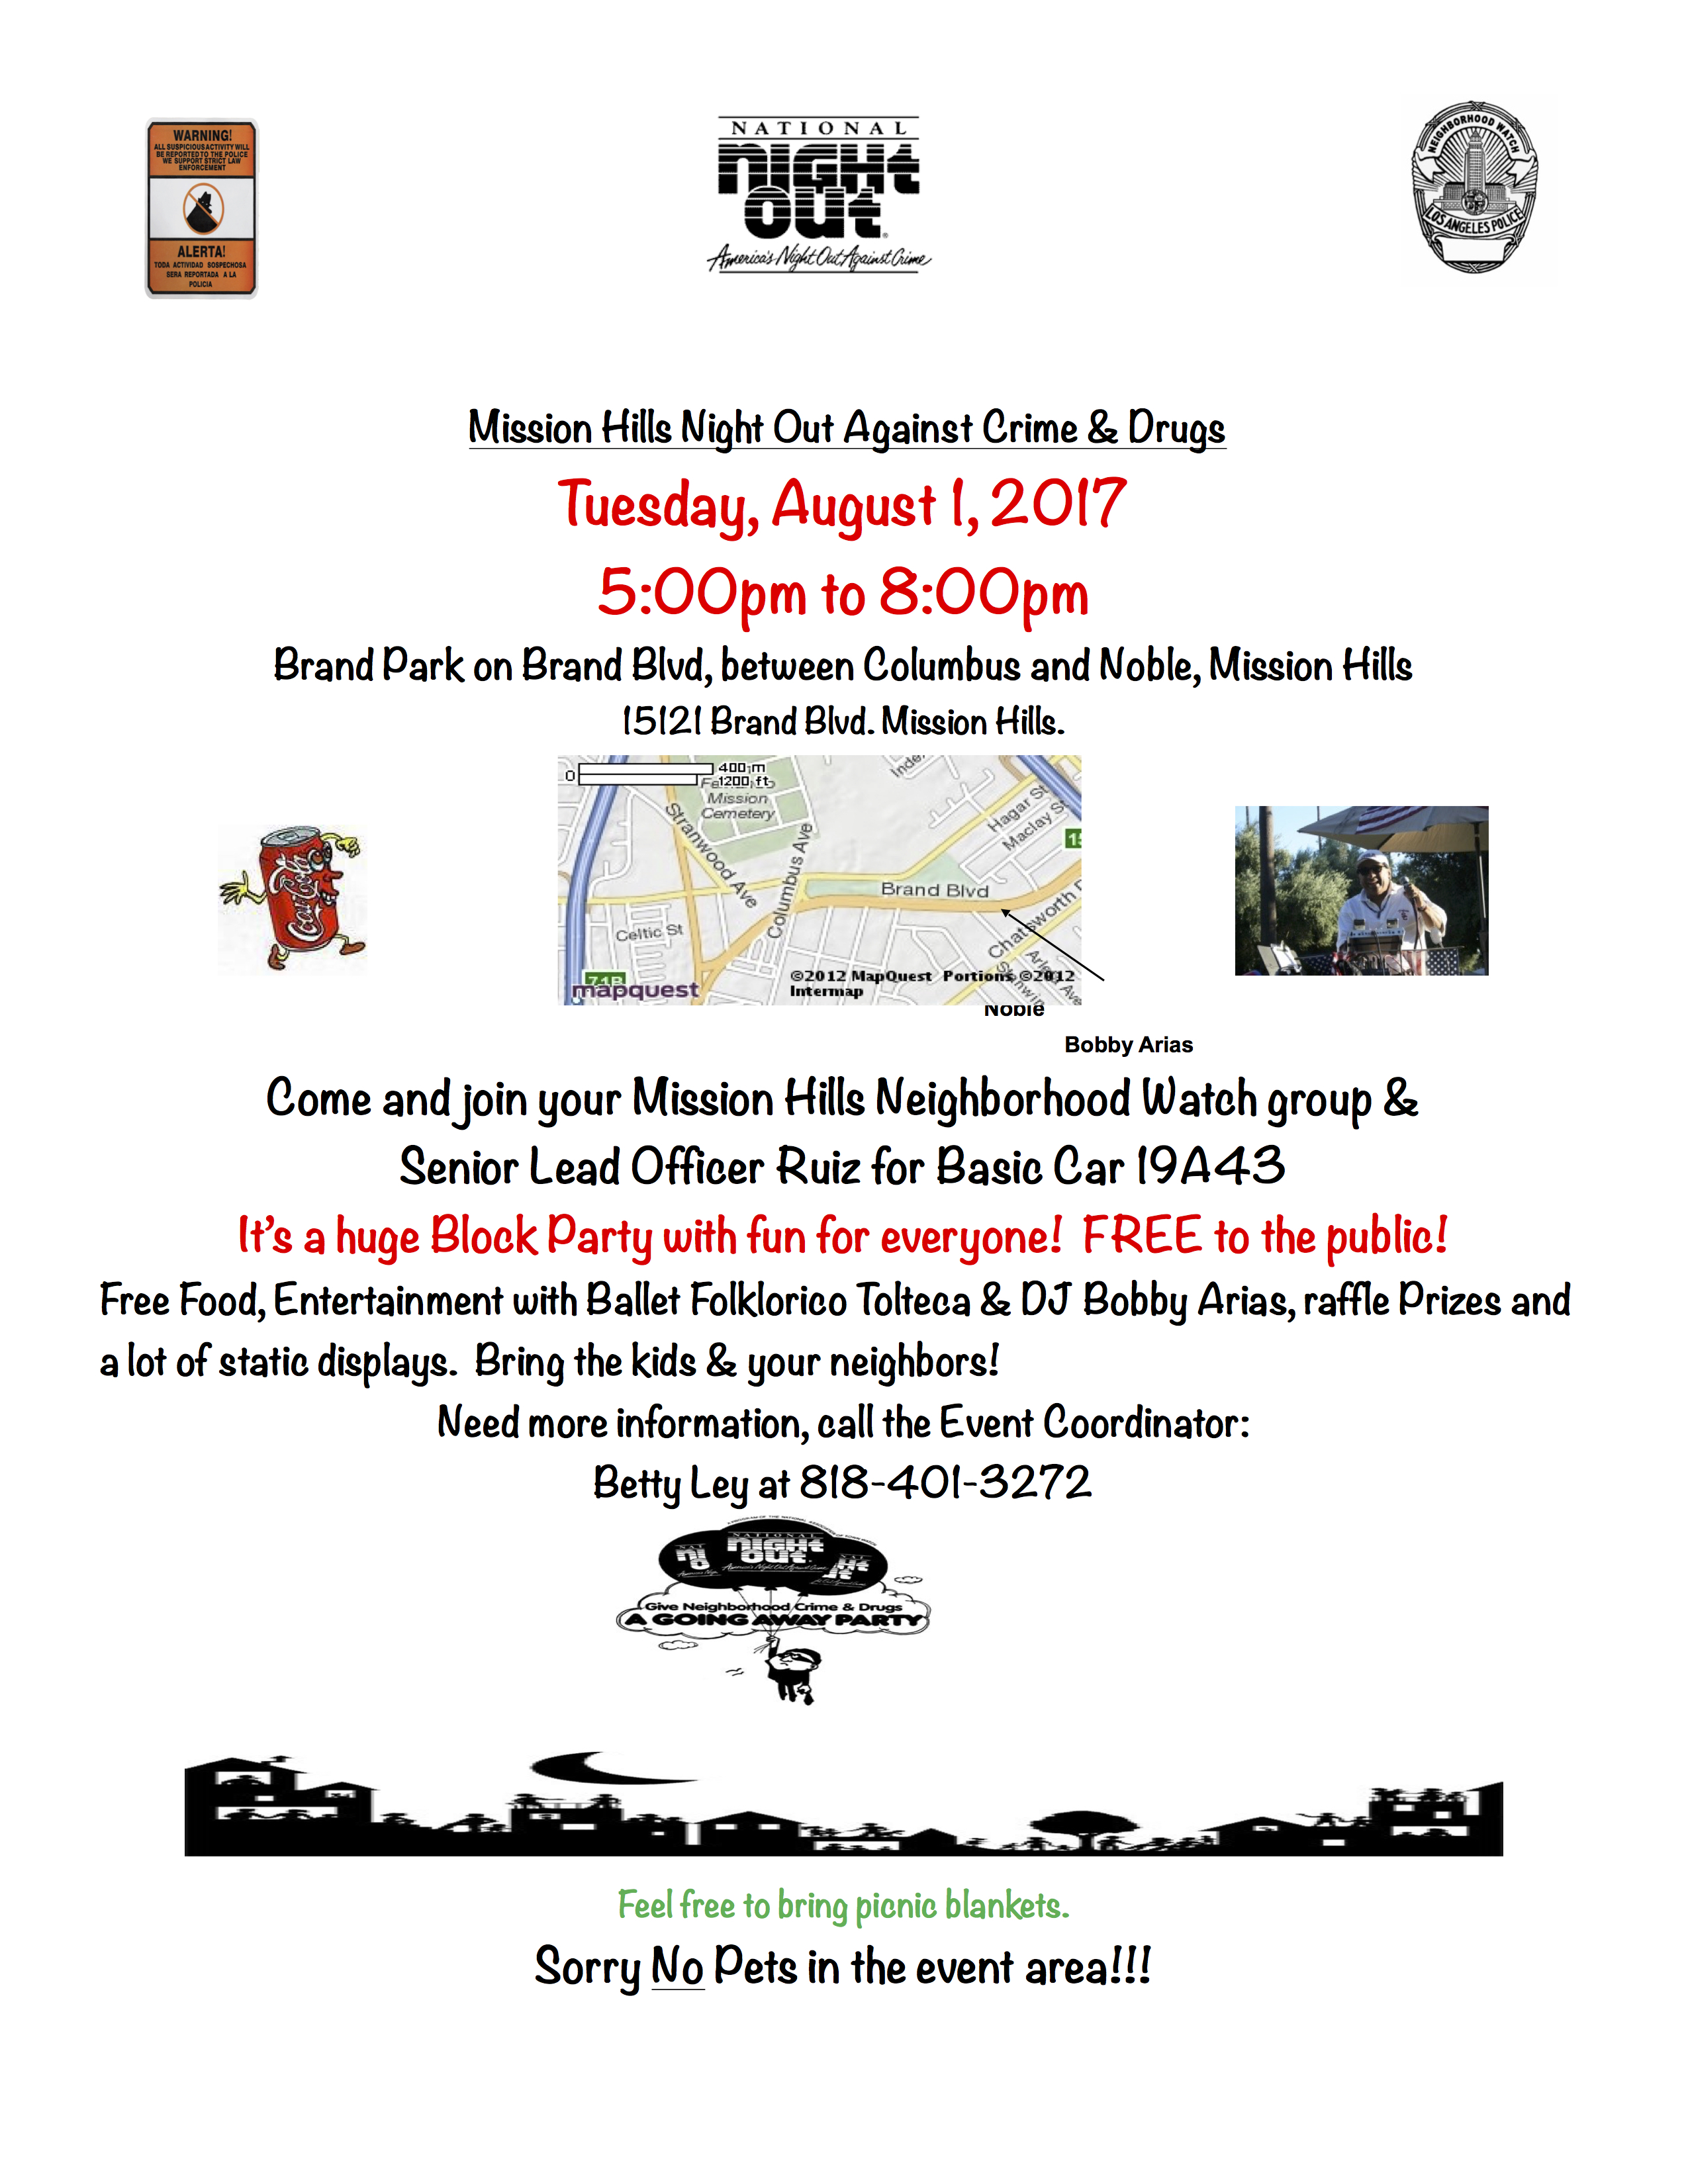 2017 National Night Out Flyer